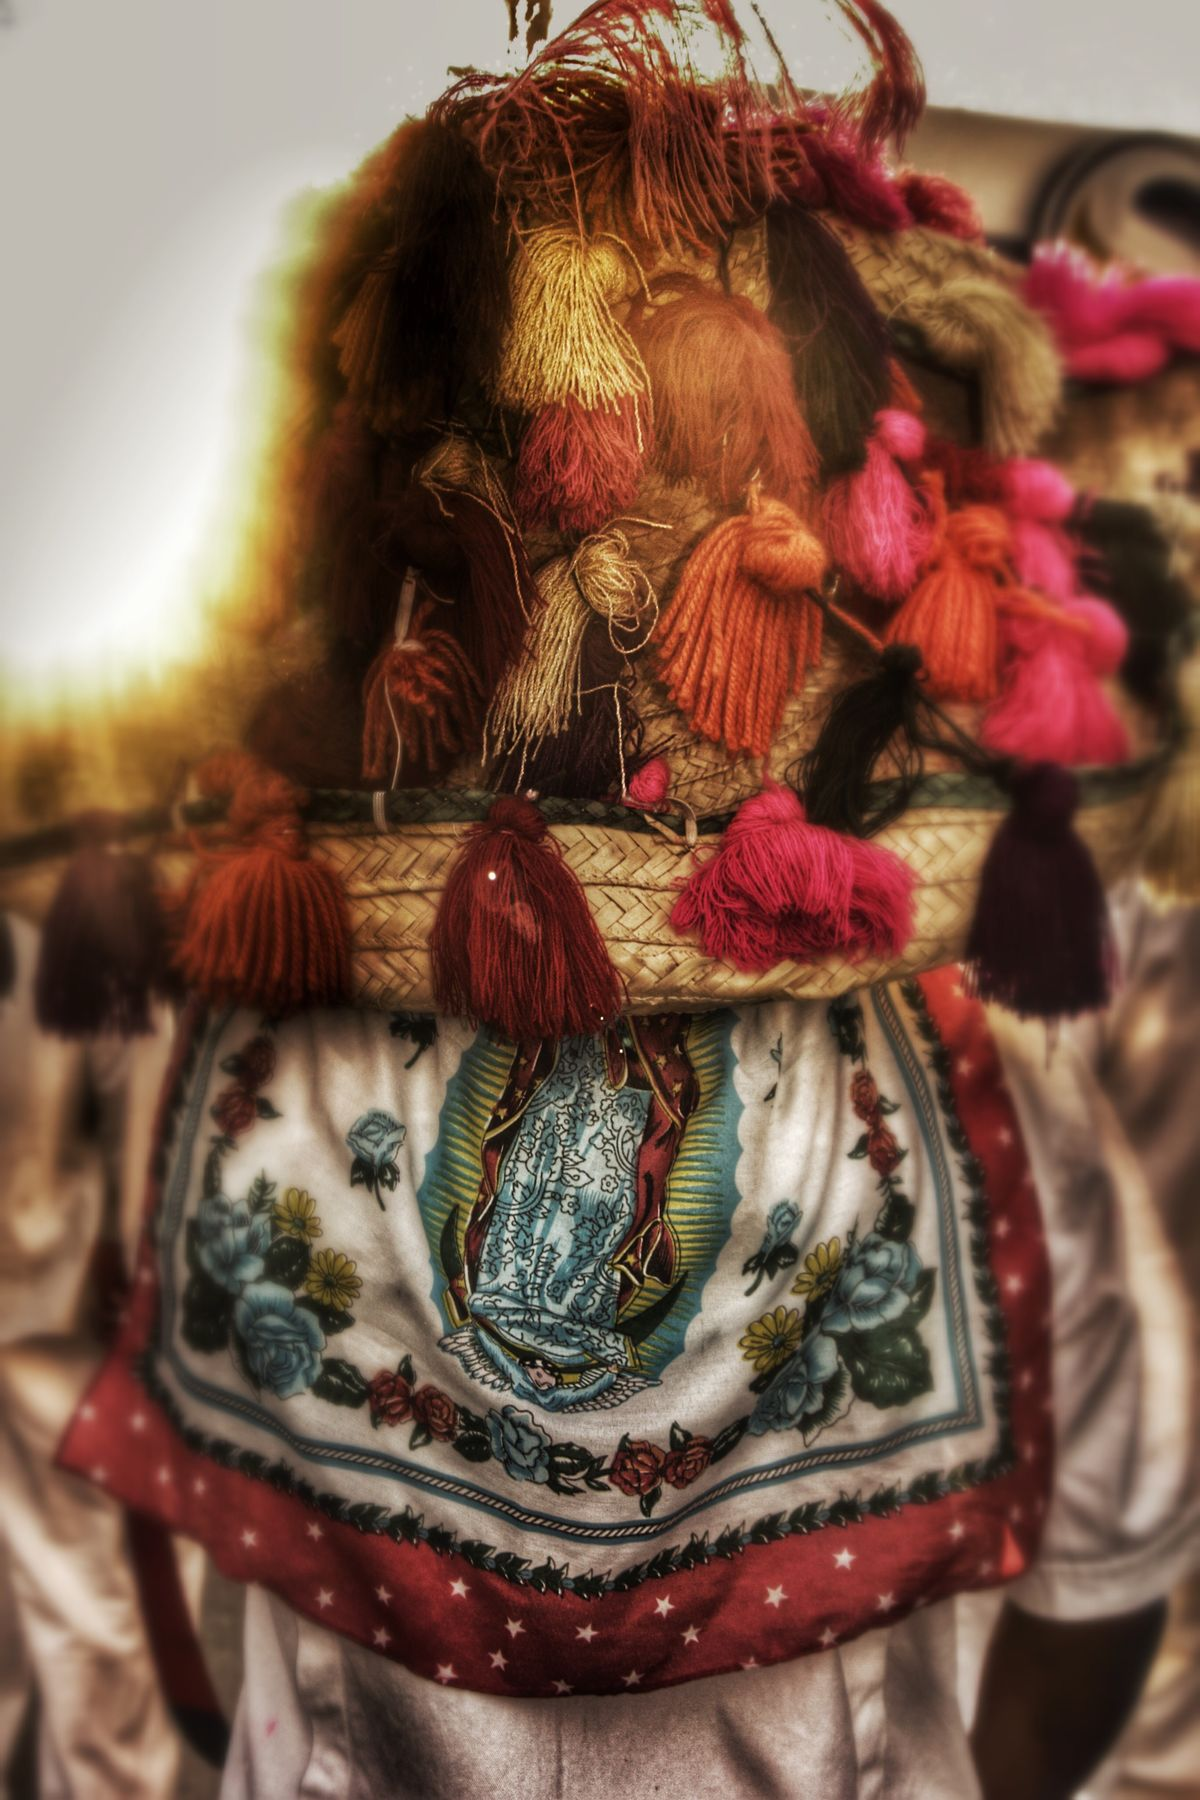 Focus On Foreground Indoors  Close-up No People Day Mexico De Mis Amores Mexico Chicahuales Aguascalientes Tradition Dancing Dancer Virgen De Guadalupe Virgen María Virgen